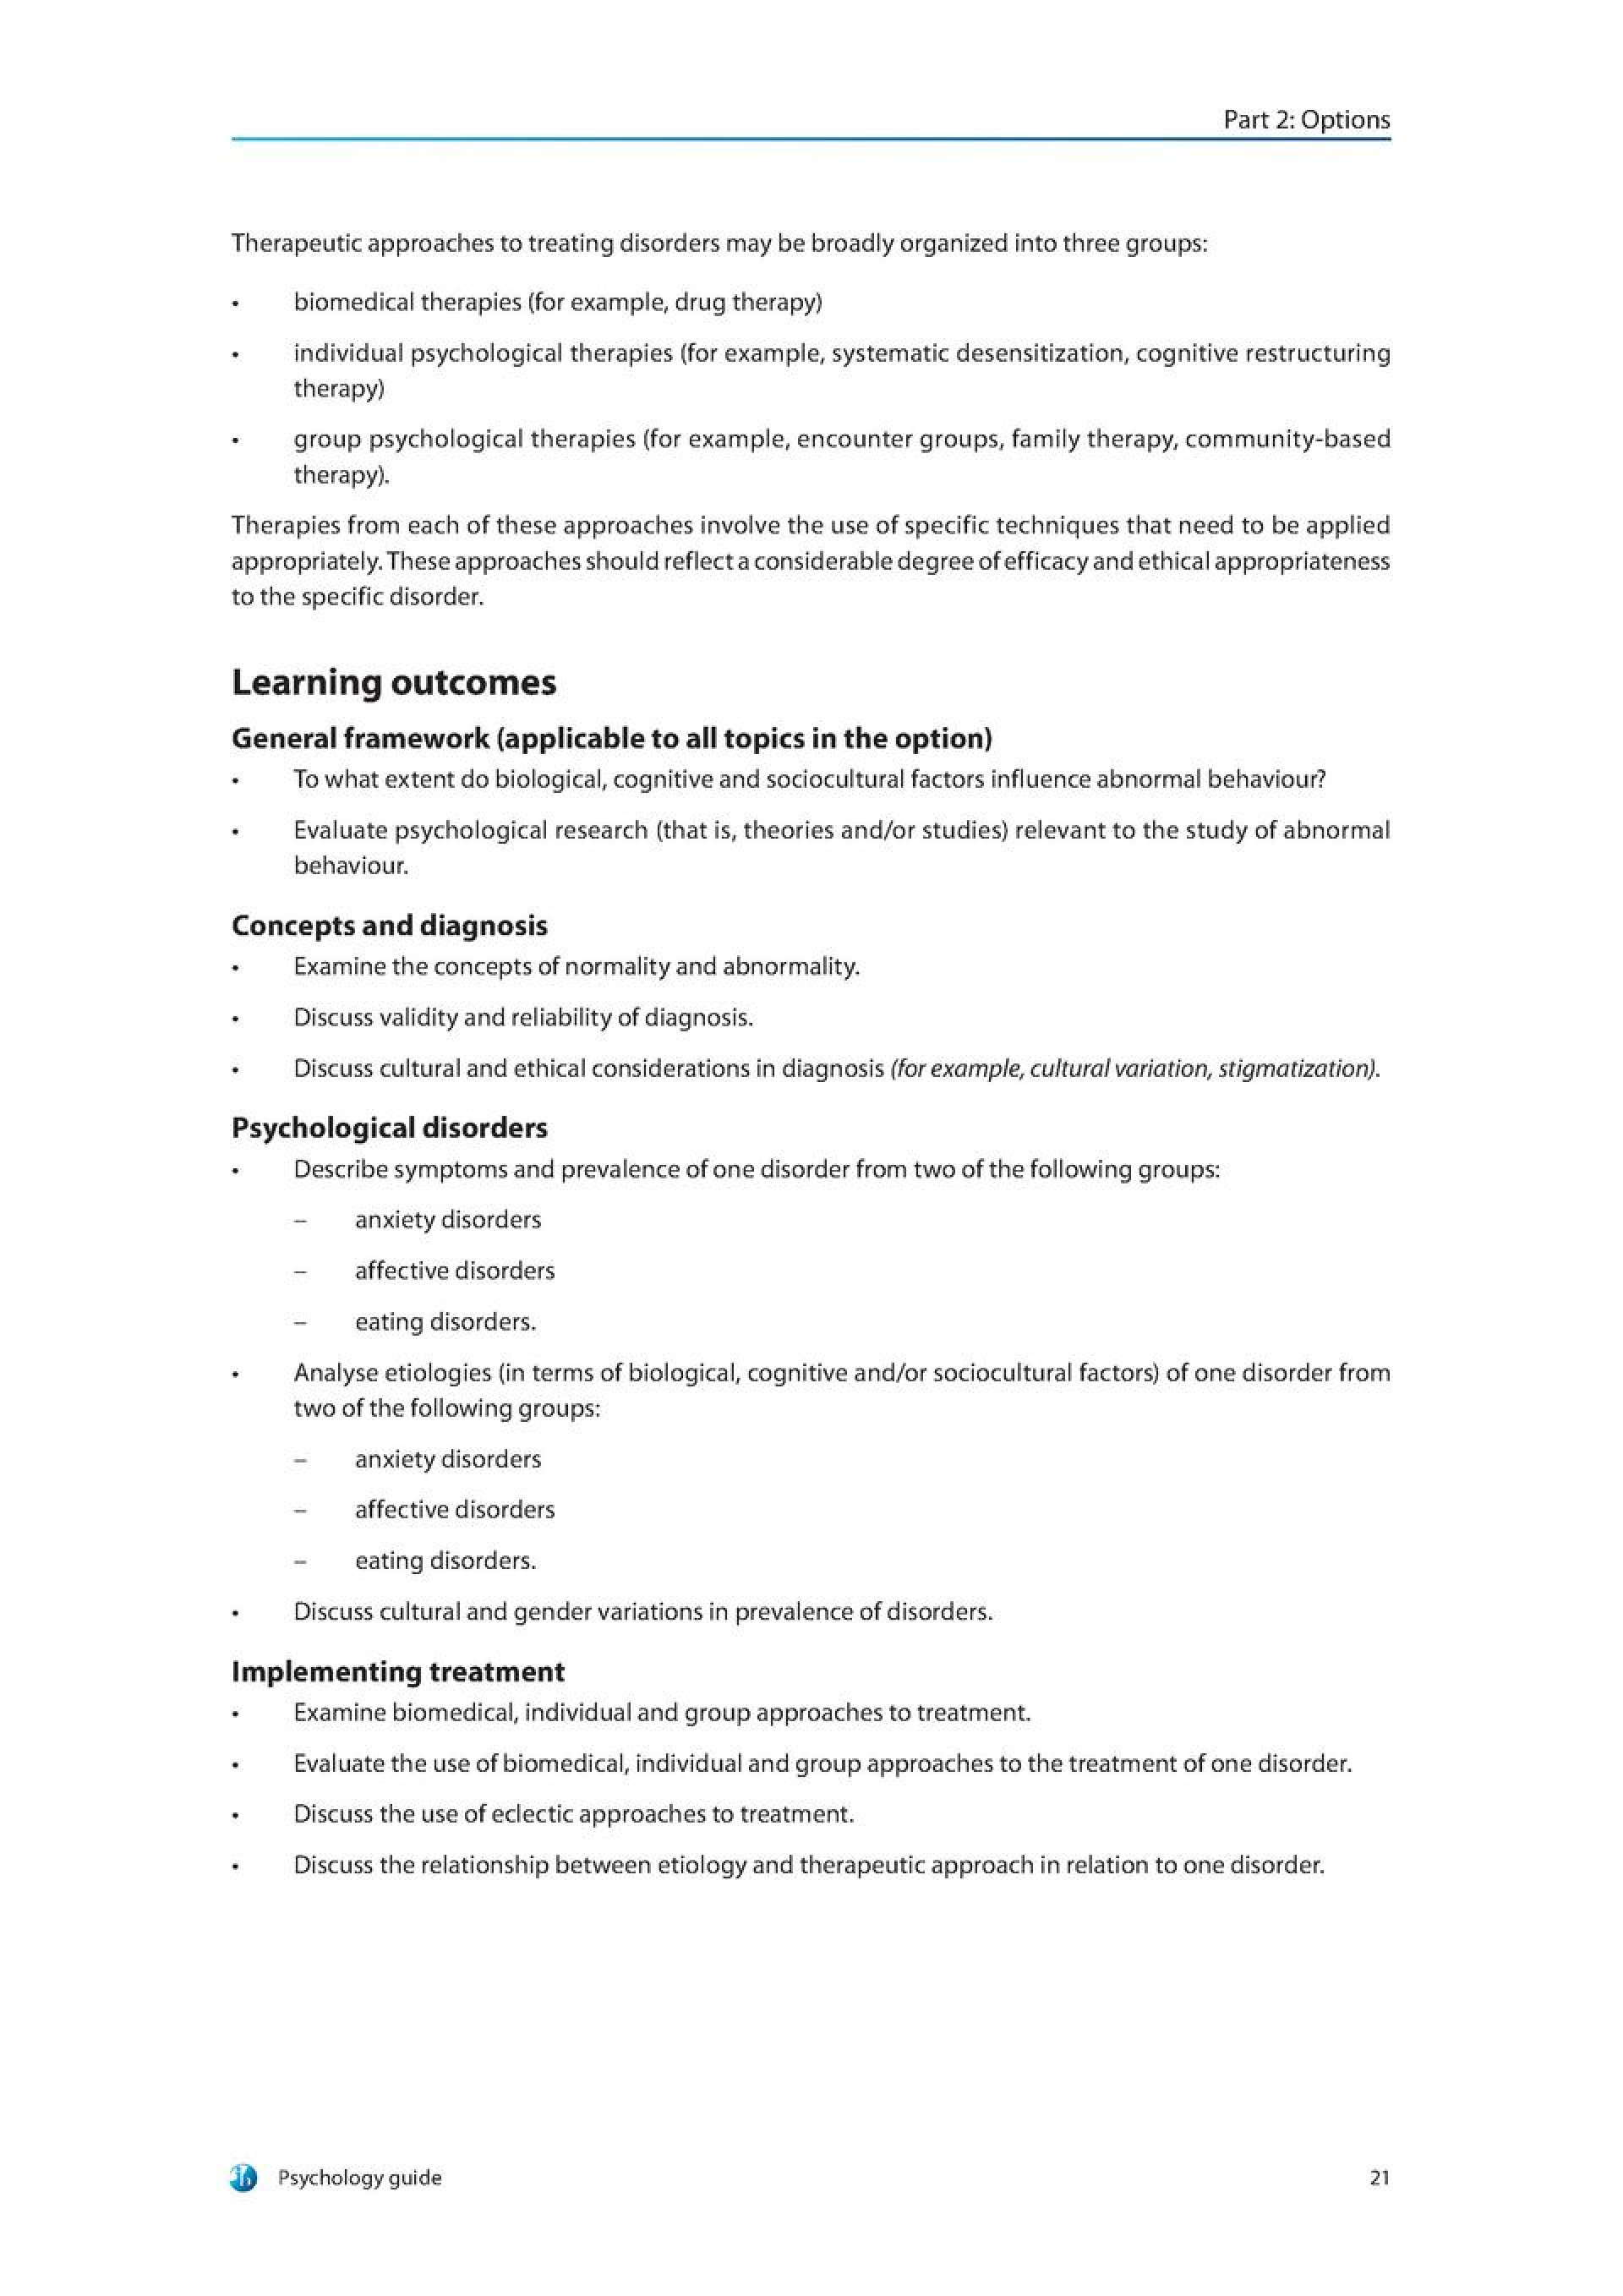 025 Abnormal Psychology Topics For Research Paper Vi71lfmq Unique 1920